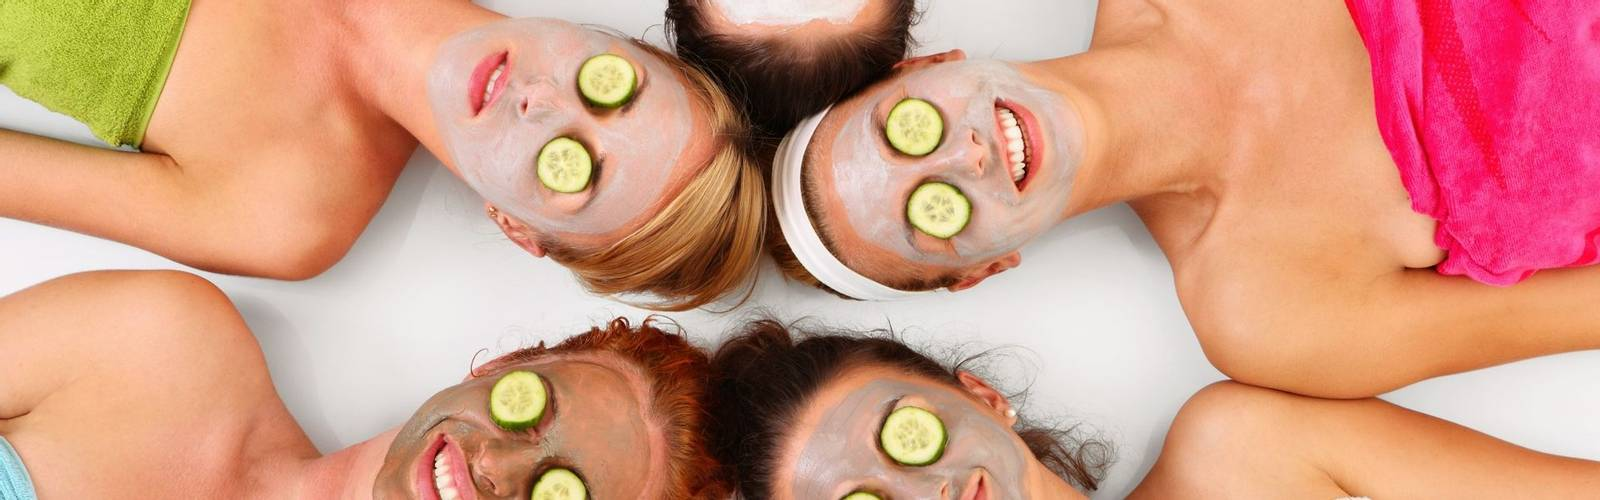 16537352 - a picture of five girl friends relaxing with facial masks on over white background